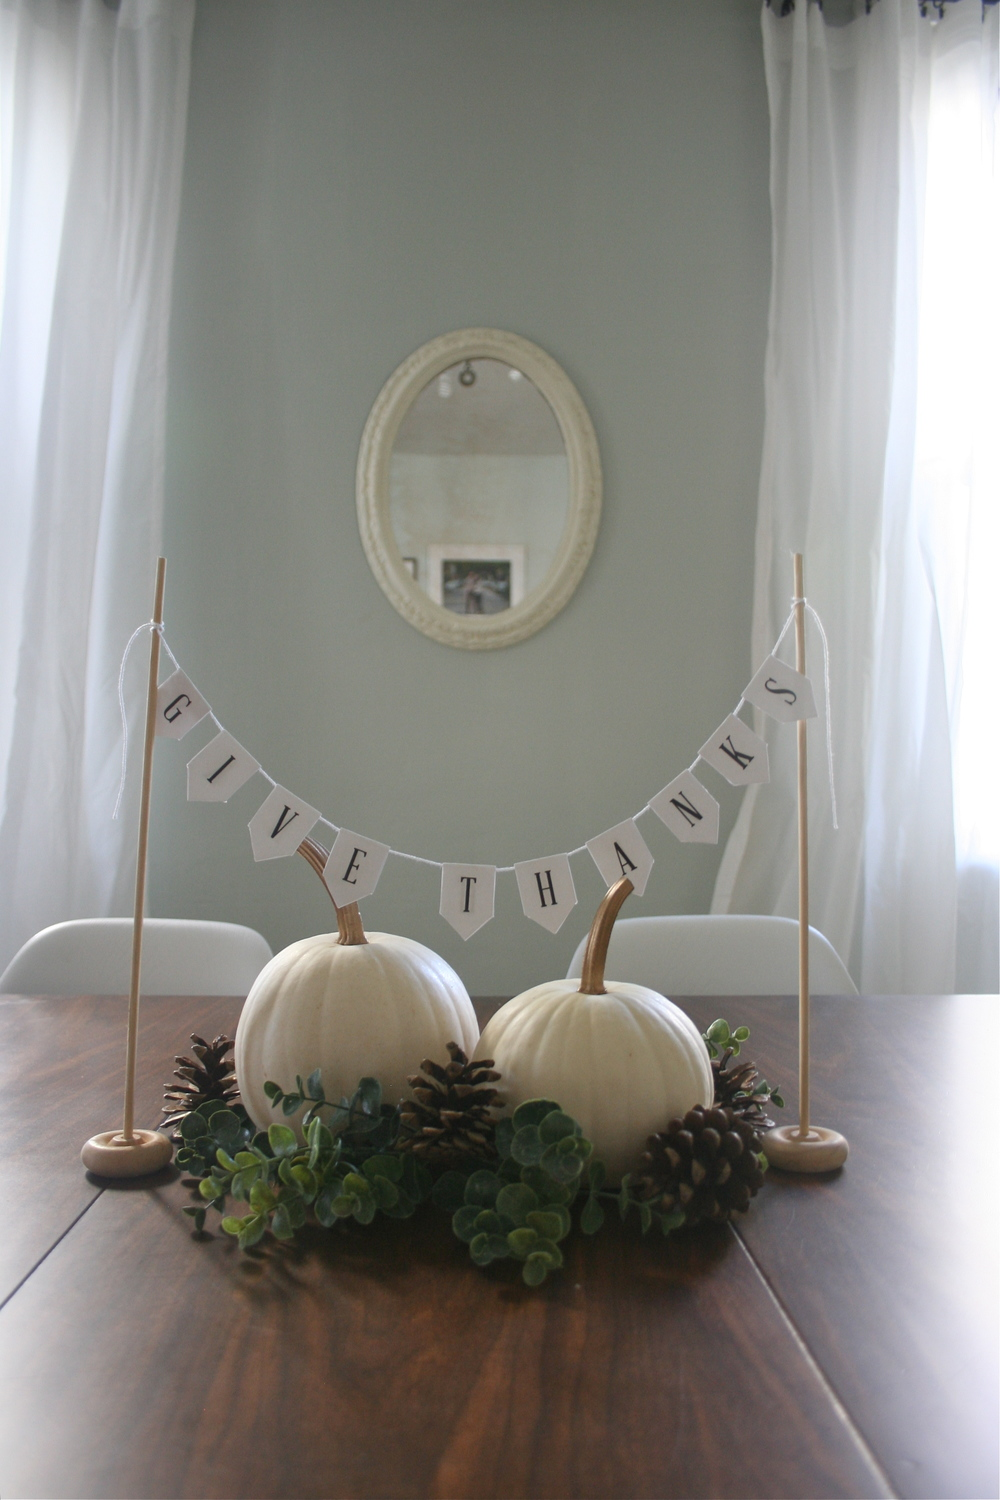 Printable Give Thanks Banner & a Simple Thanksgiving Centerpiece from Stevie Storck Design Co.